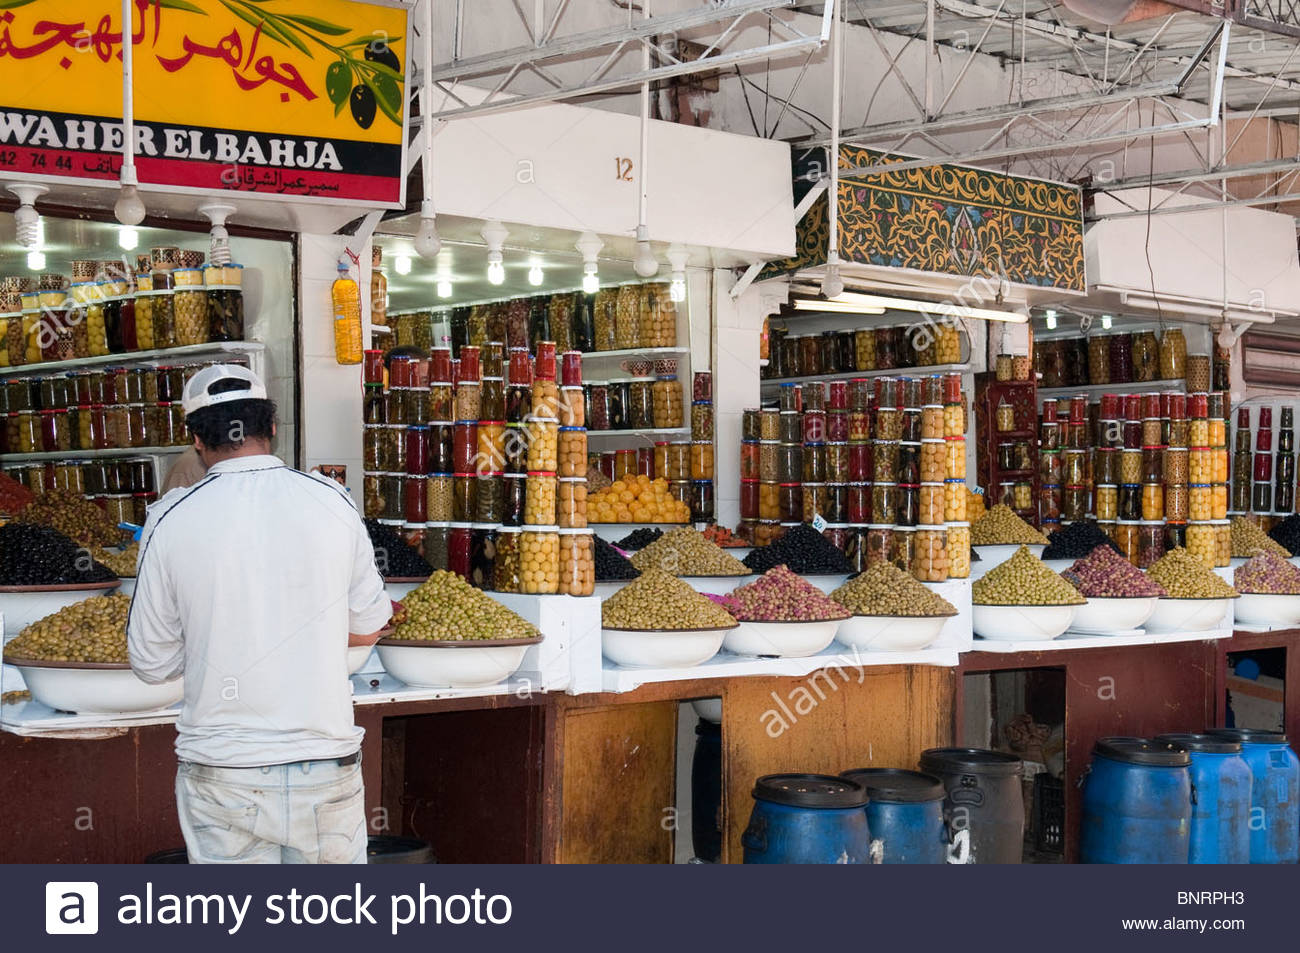 Olives and Preserved Lemons For Sale in a Moroccan Market - Stock Image